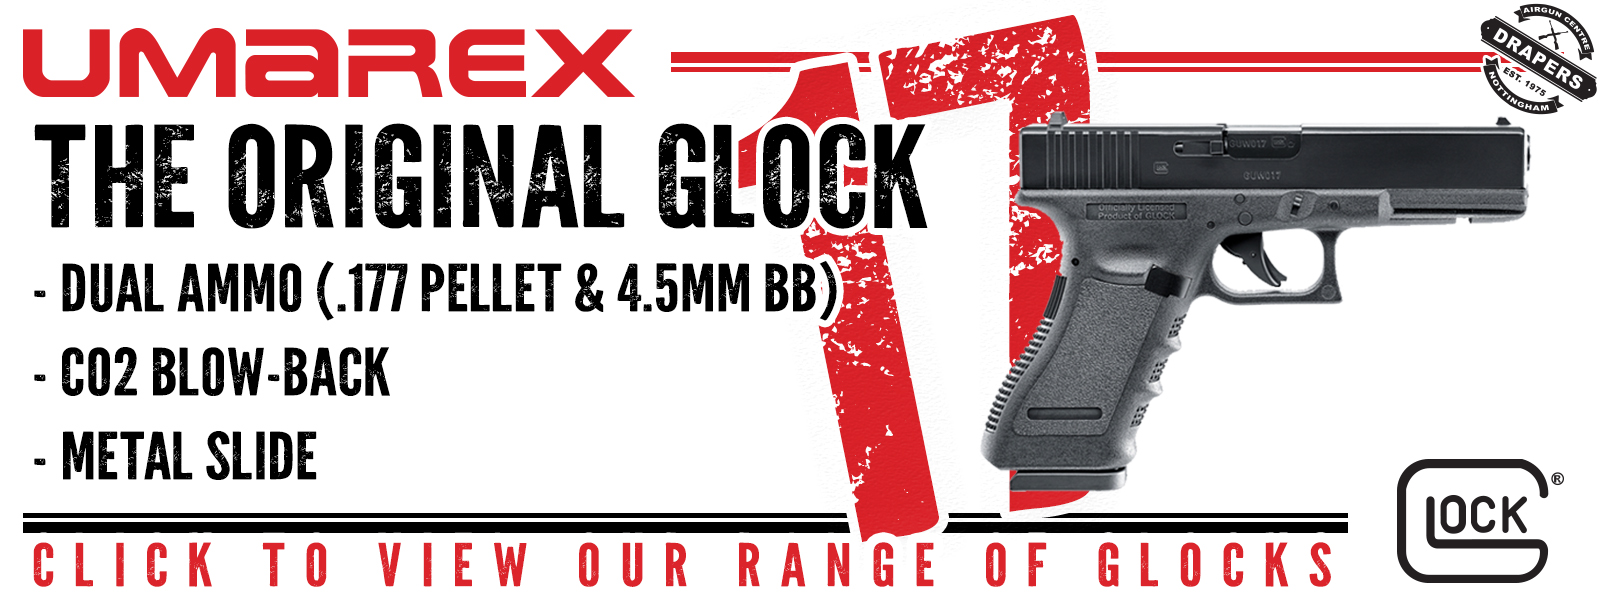 Glock Products